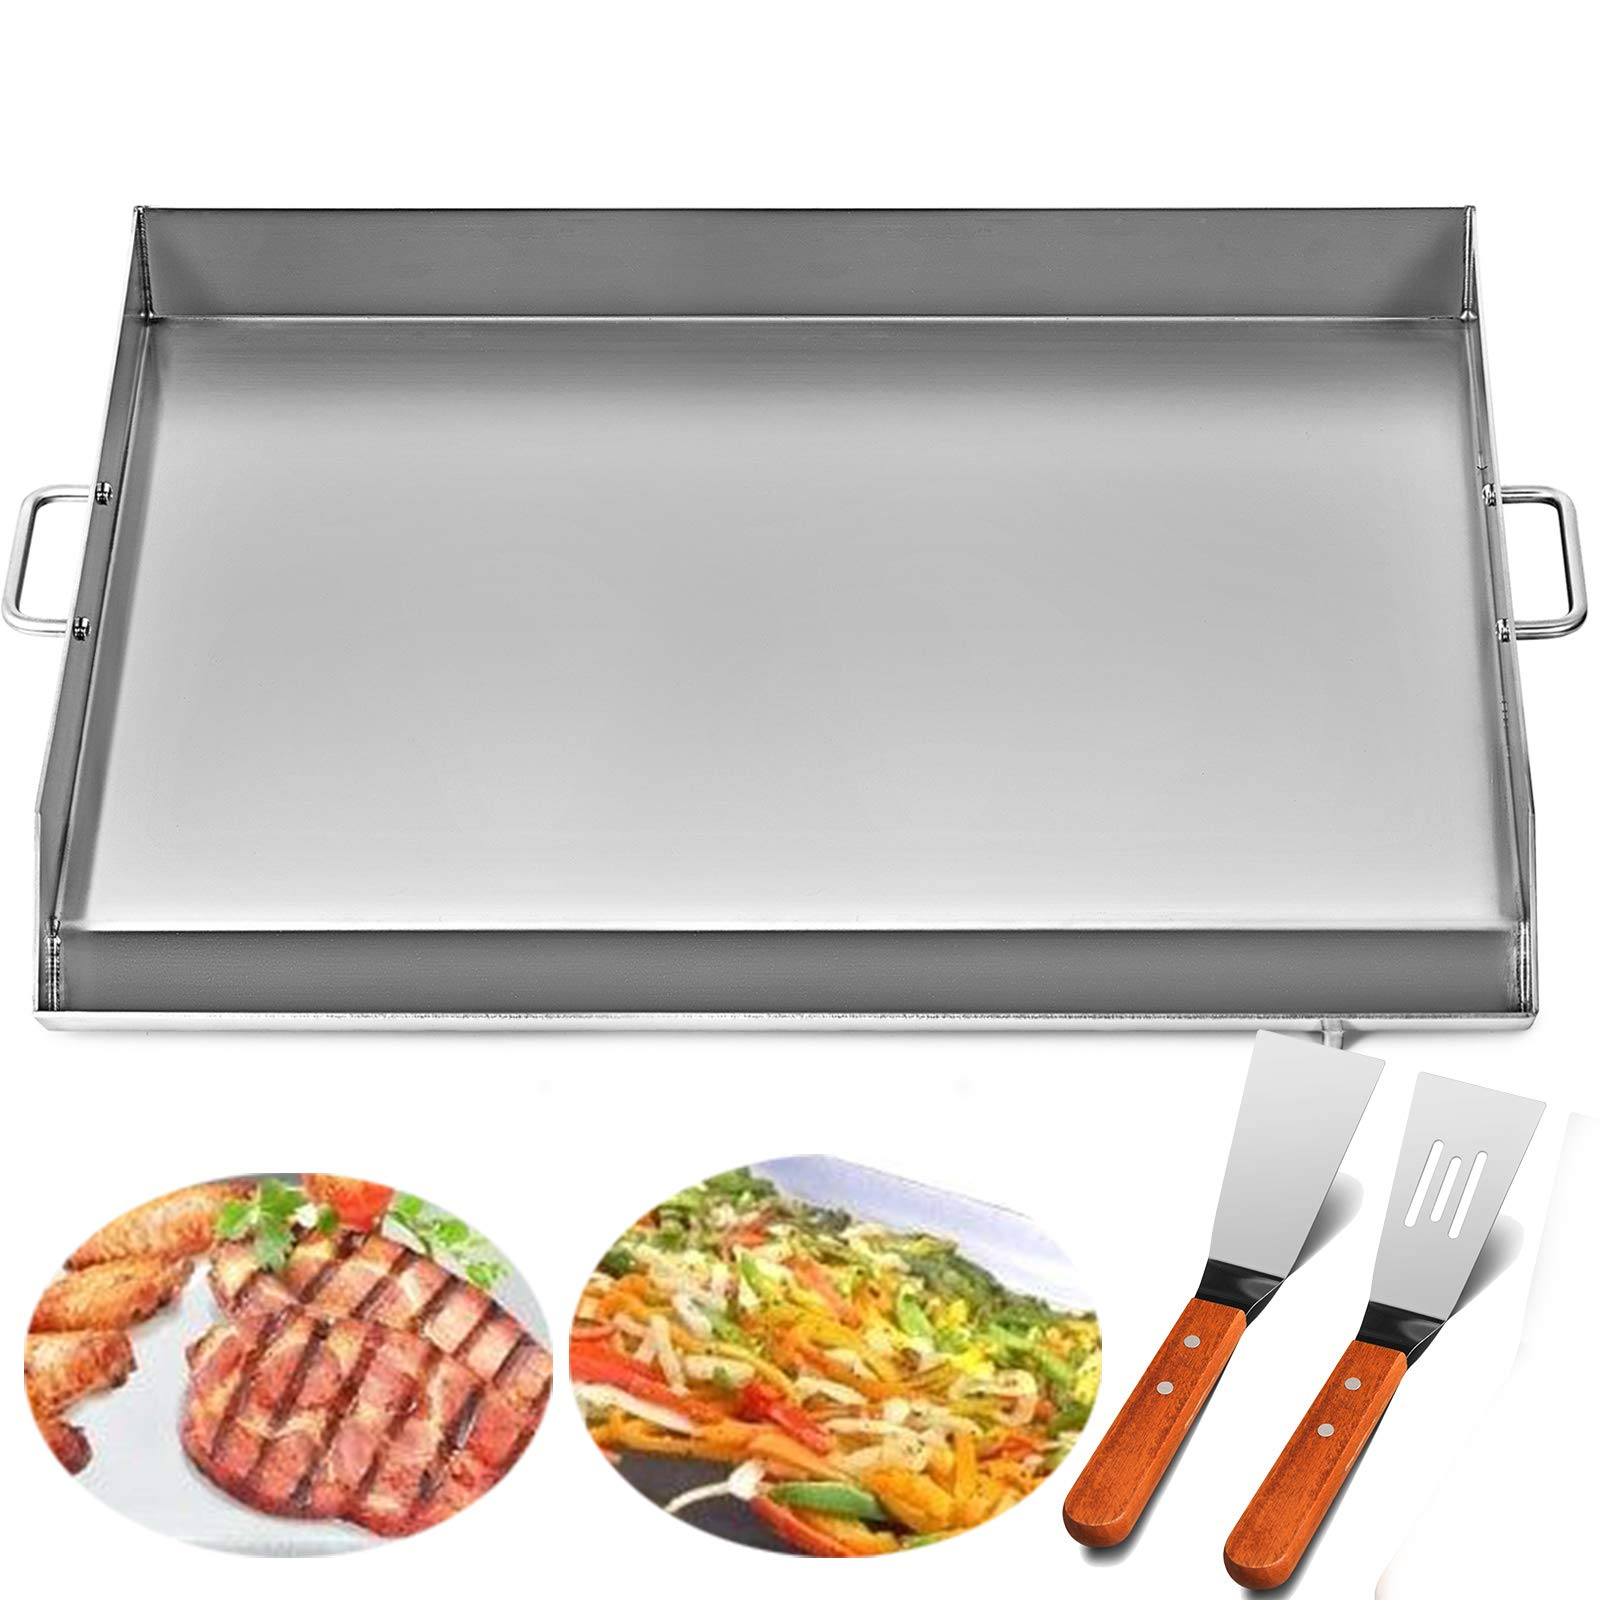 VEVOR Universal Flat Top Griddle 32''x17'' Stainless Steel Flat Top Griddle Plancha Comal BBQ Griddle with Handles&Griddle Spatula & Scraper by VEVOR